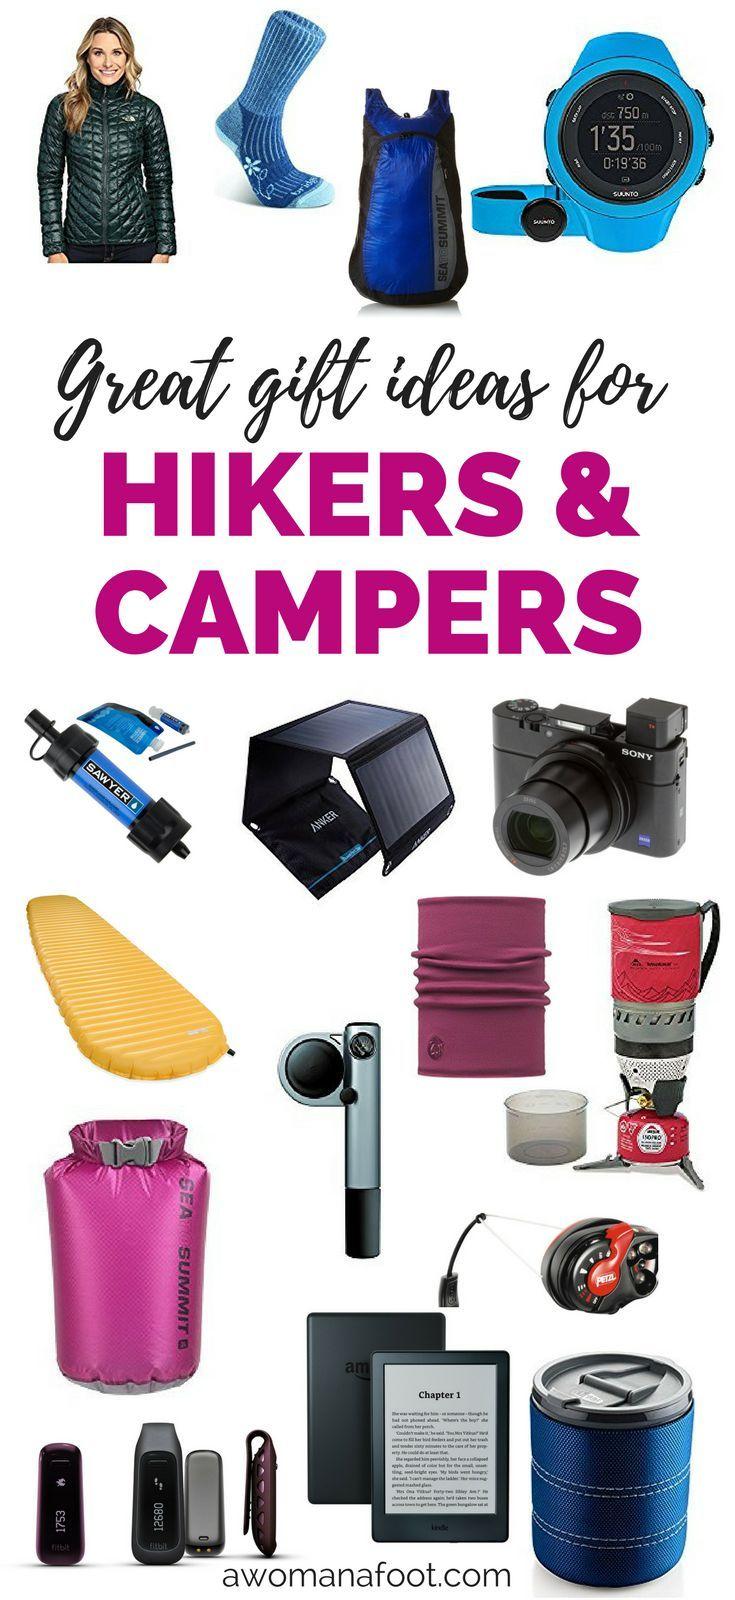 Great Gift Ideas for Hikers & Campers - perfect for every outdoorsy traveler!   #hiking #gear   #camping   #outdoors   hiking gadgets   #giftideas   Valentine's   #Christmas   Mother's Day   Father's Day   #Birthday   stuffers   #giftguide   back to school   awomanafoot.com